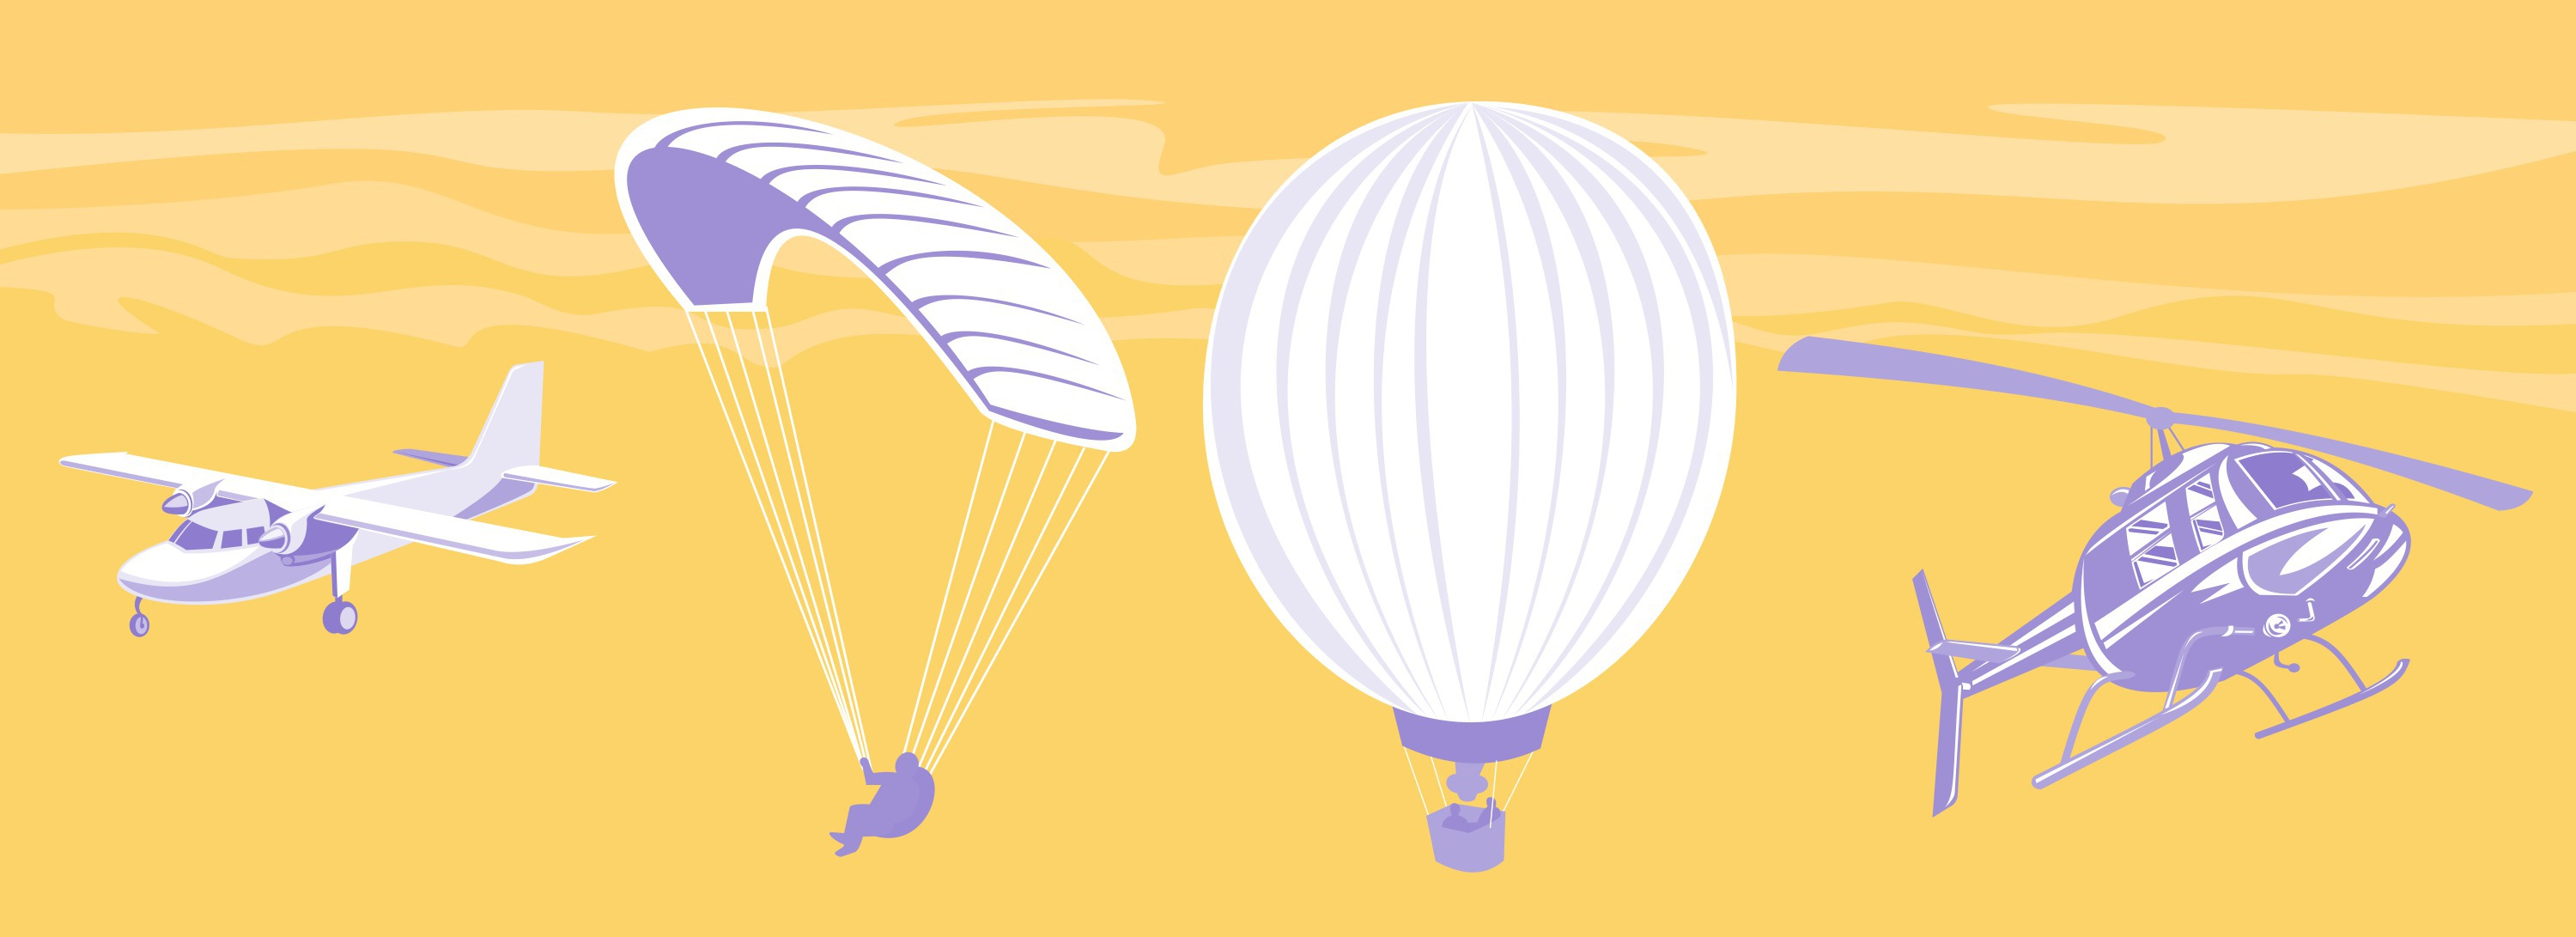 airplane-parachute-hot-air-balloon-helicopter_fyp9s8IO_L